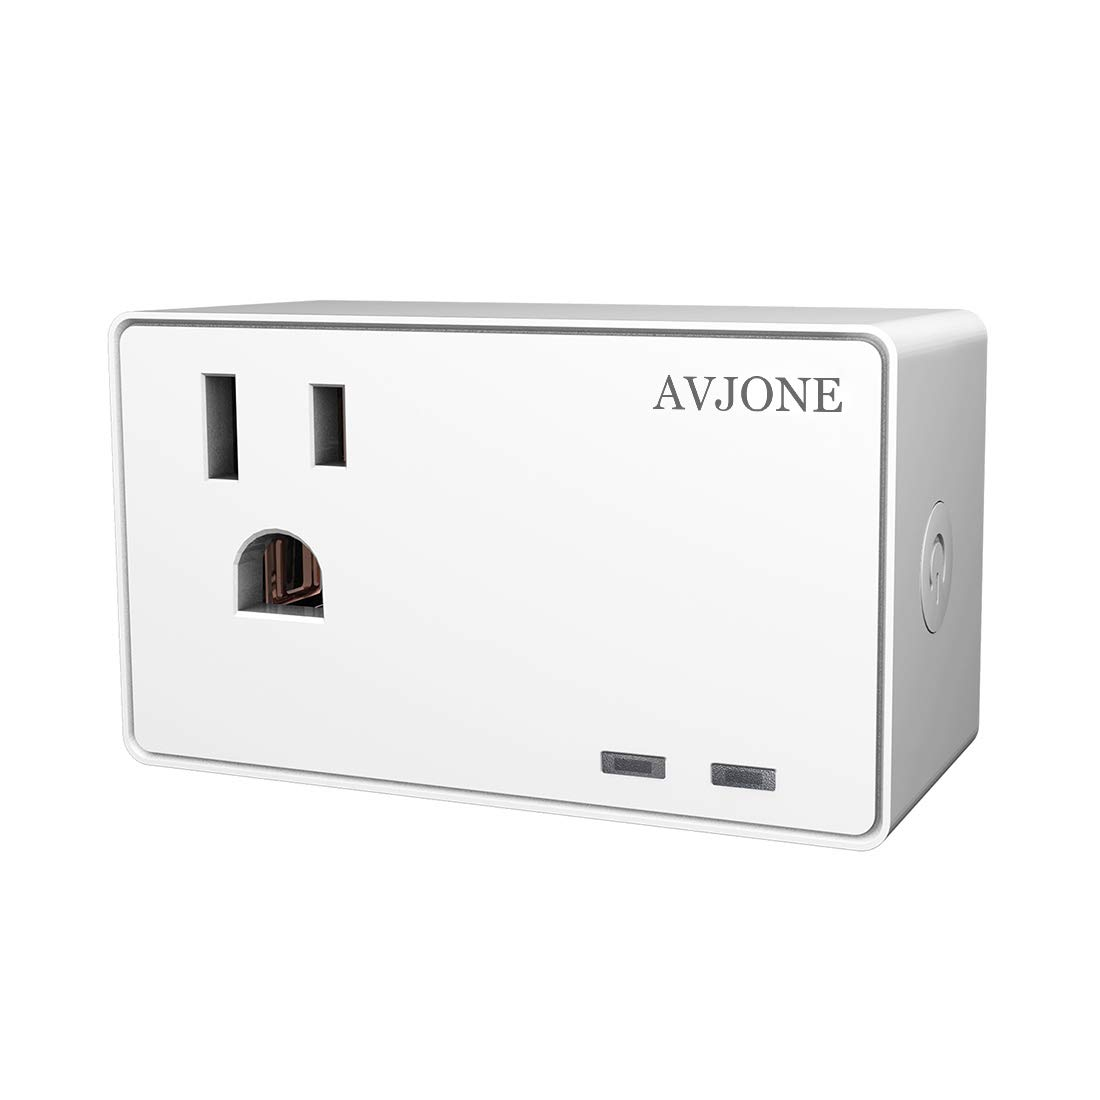 AVJONE Premium Small Smart Power Socket - Compact WiFi Wireless Power Outlet - Programmable Timing Function - Compatible With IFTTT, Alexa, Echo & Google Assistant Voice Contro